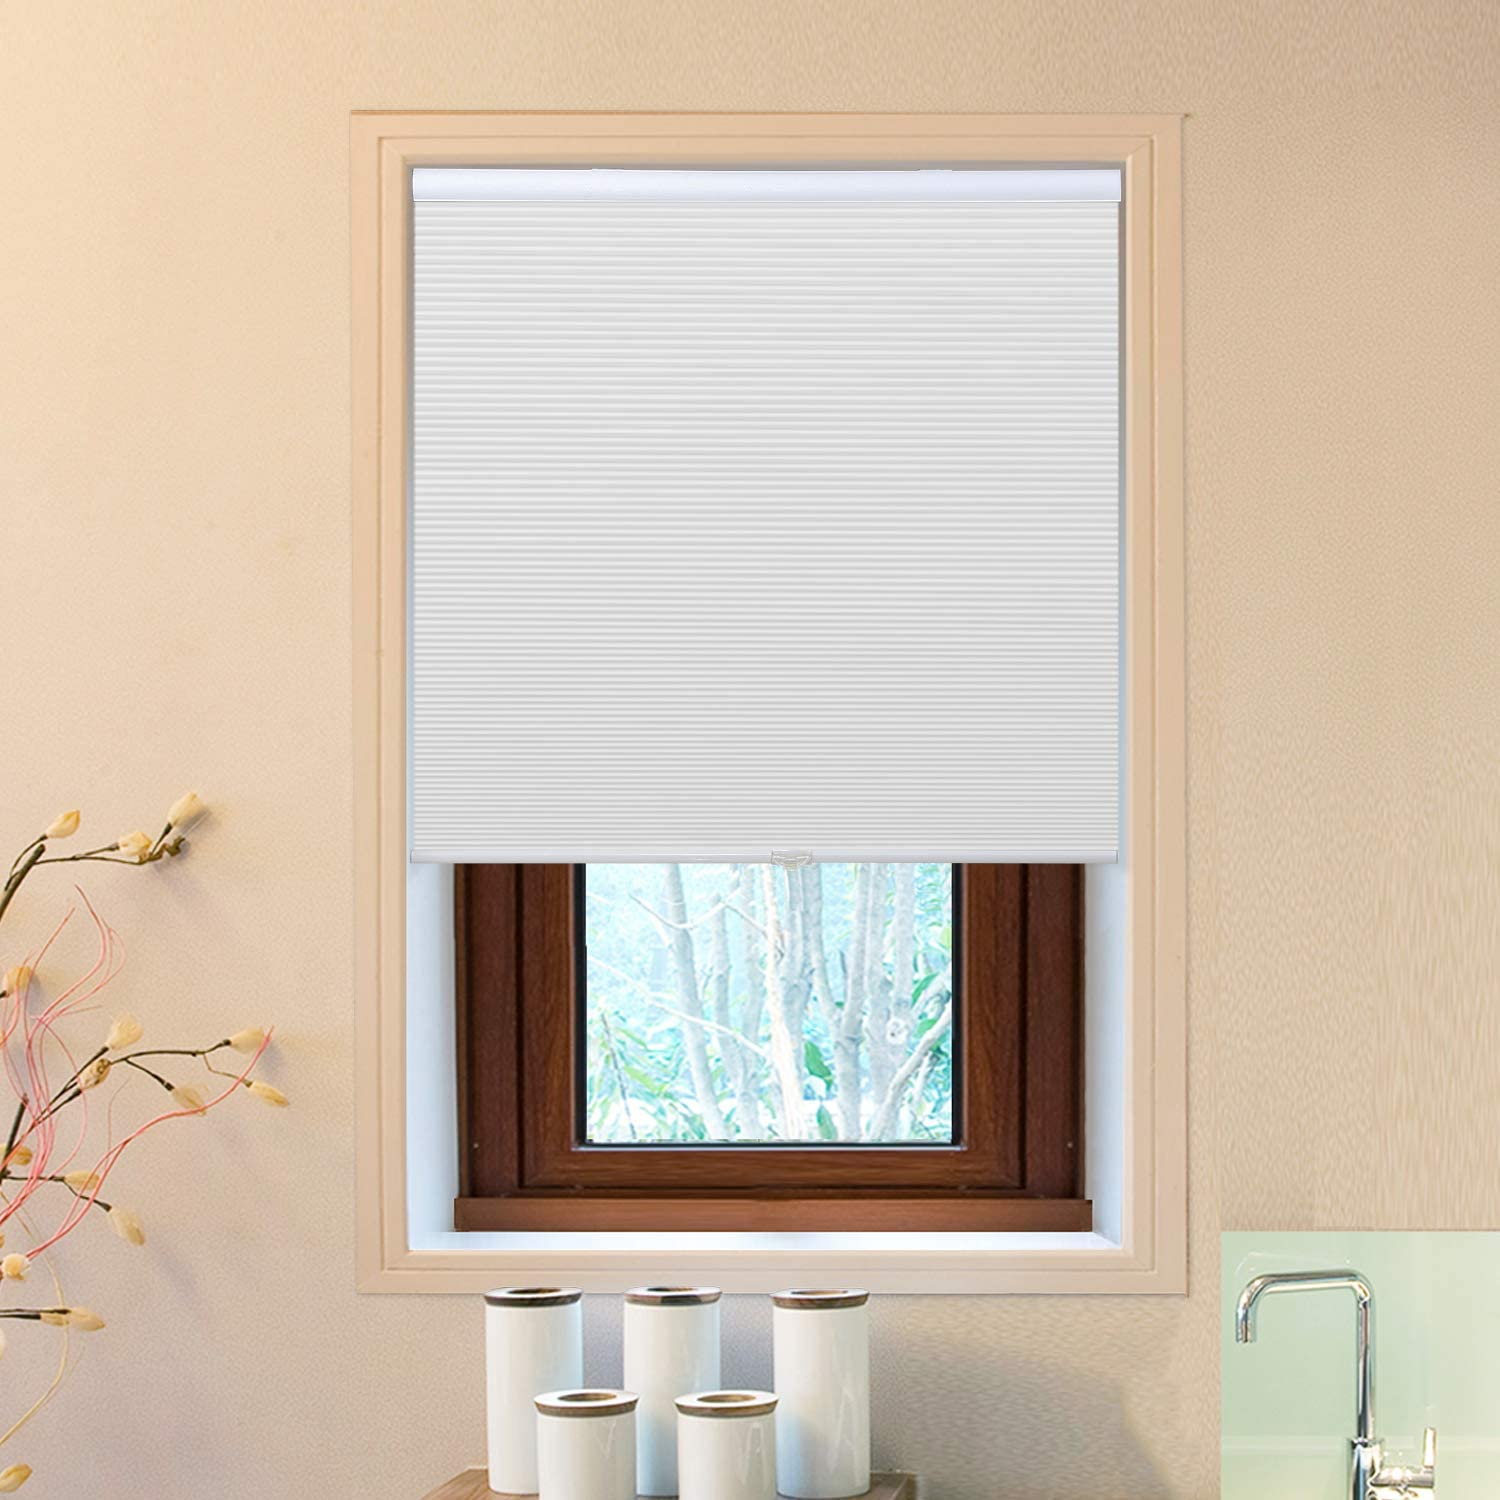 Allesin Cellular Window Shades (Blackout) Cordless Room Darkening Blinds and Shades for Windows, Bedroom, Home (White 23